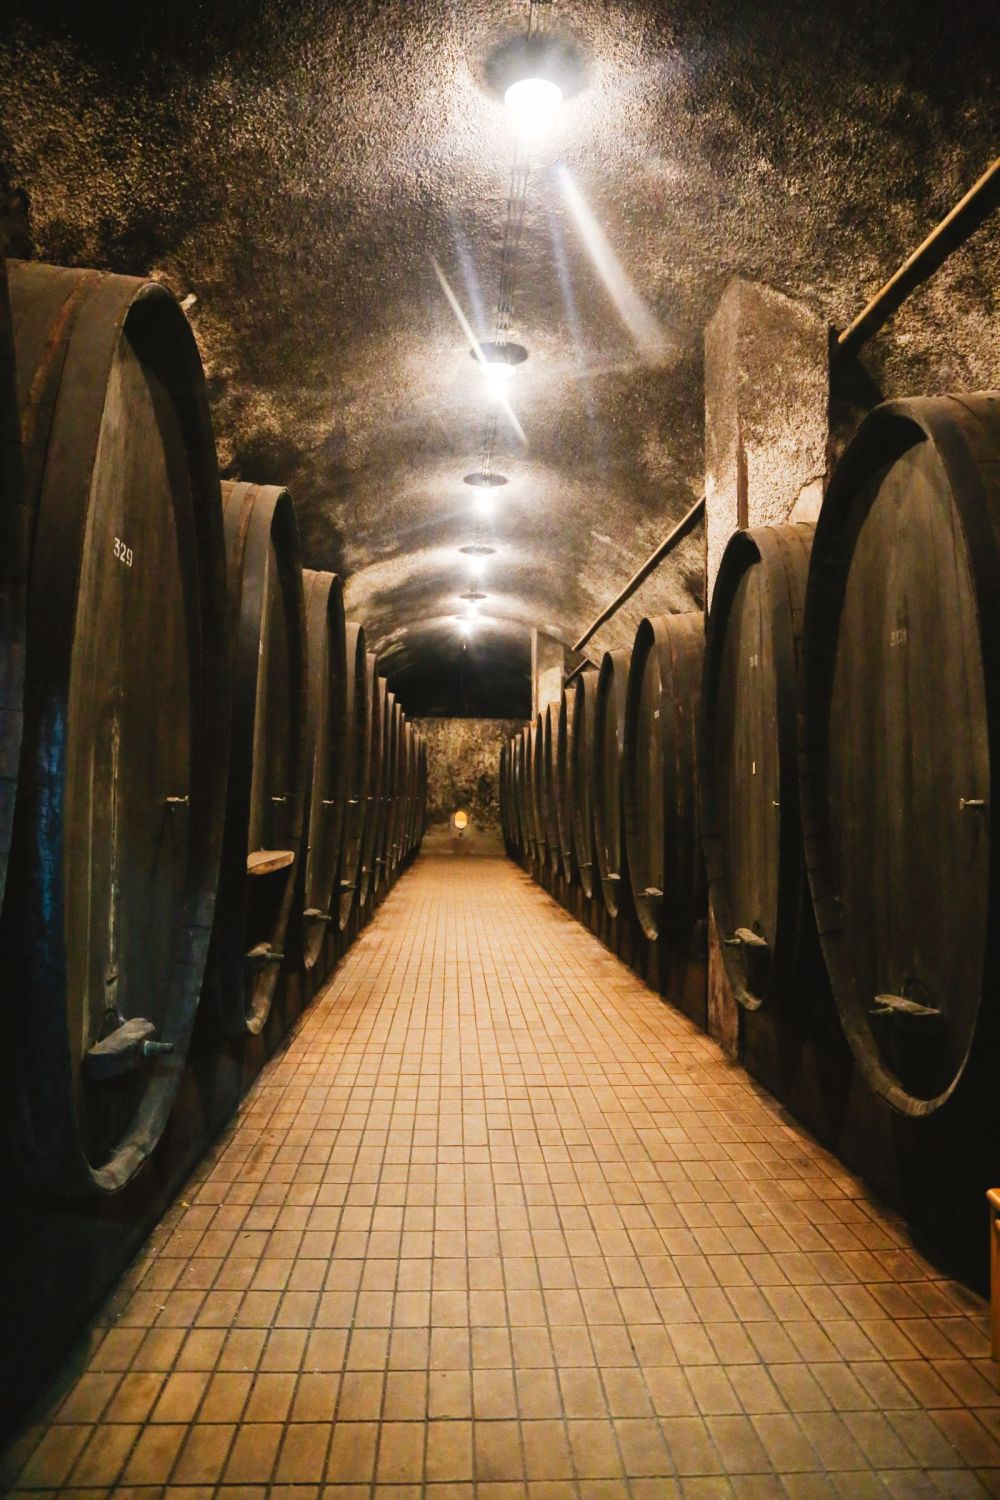 There's A Big Reason You Should Visit Slovenia This Year - The Wine! (19)